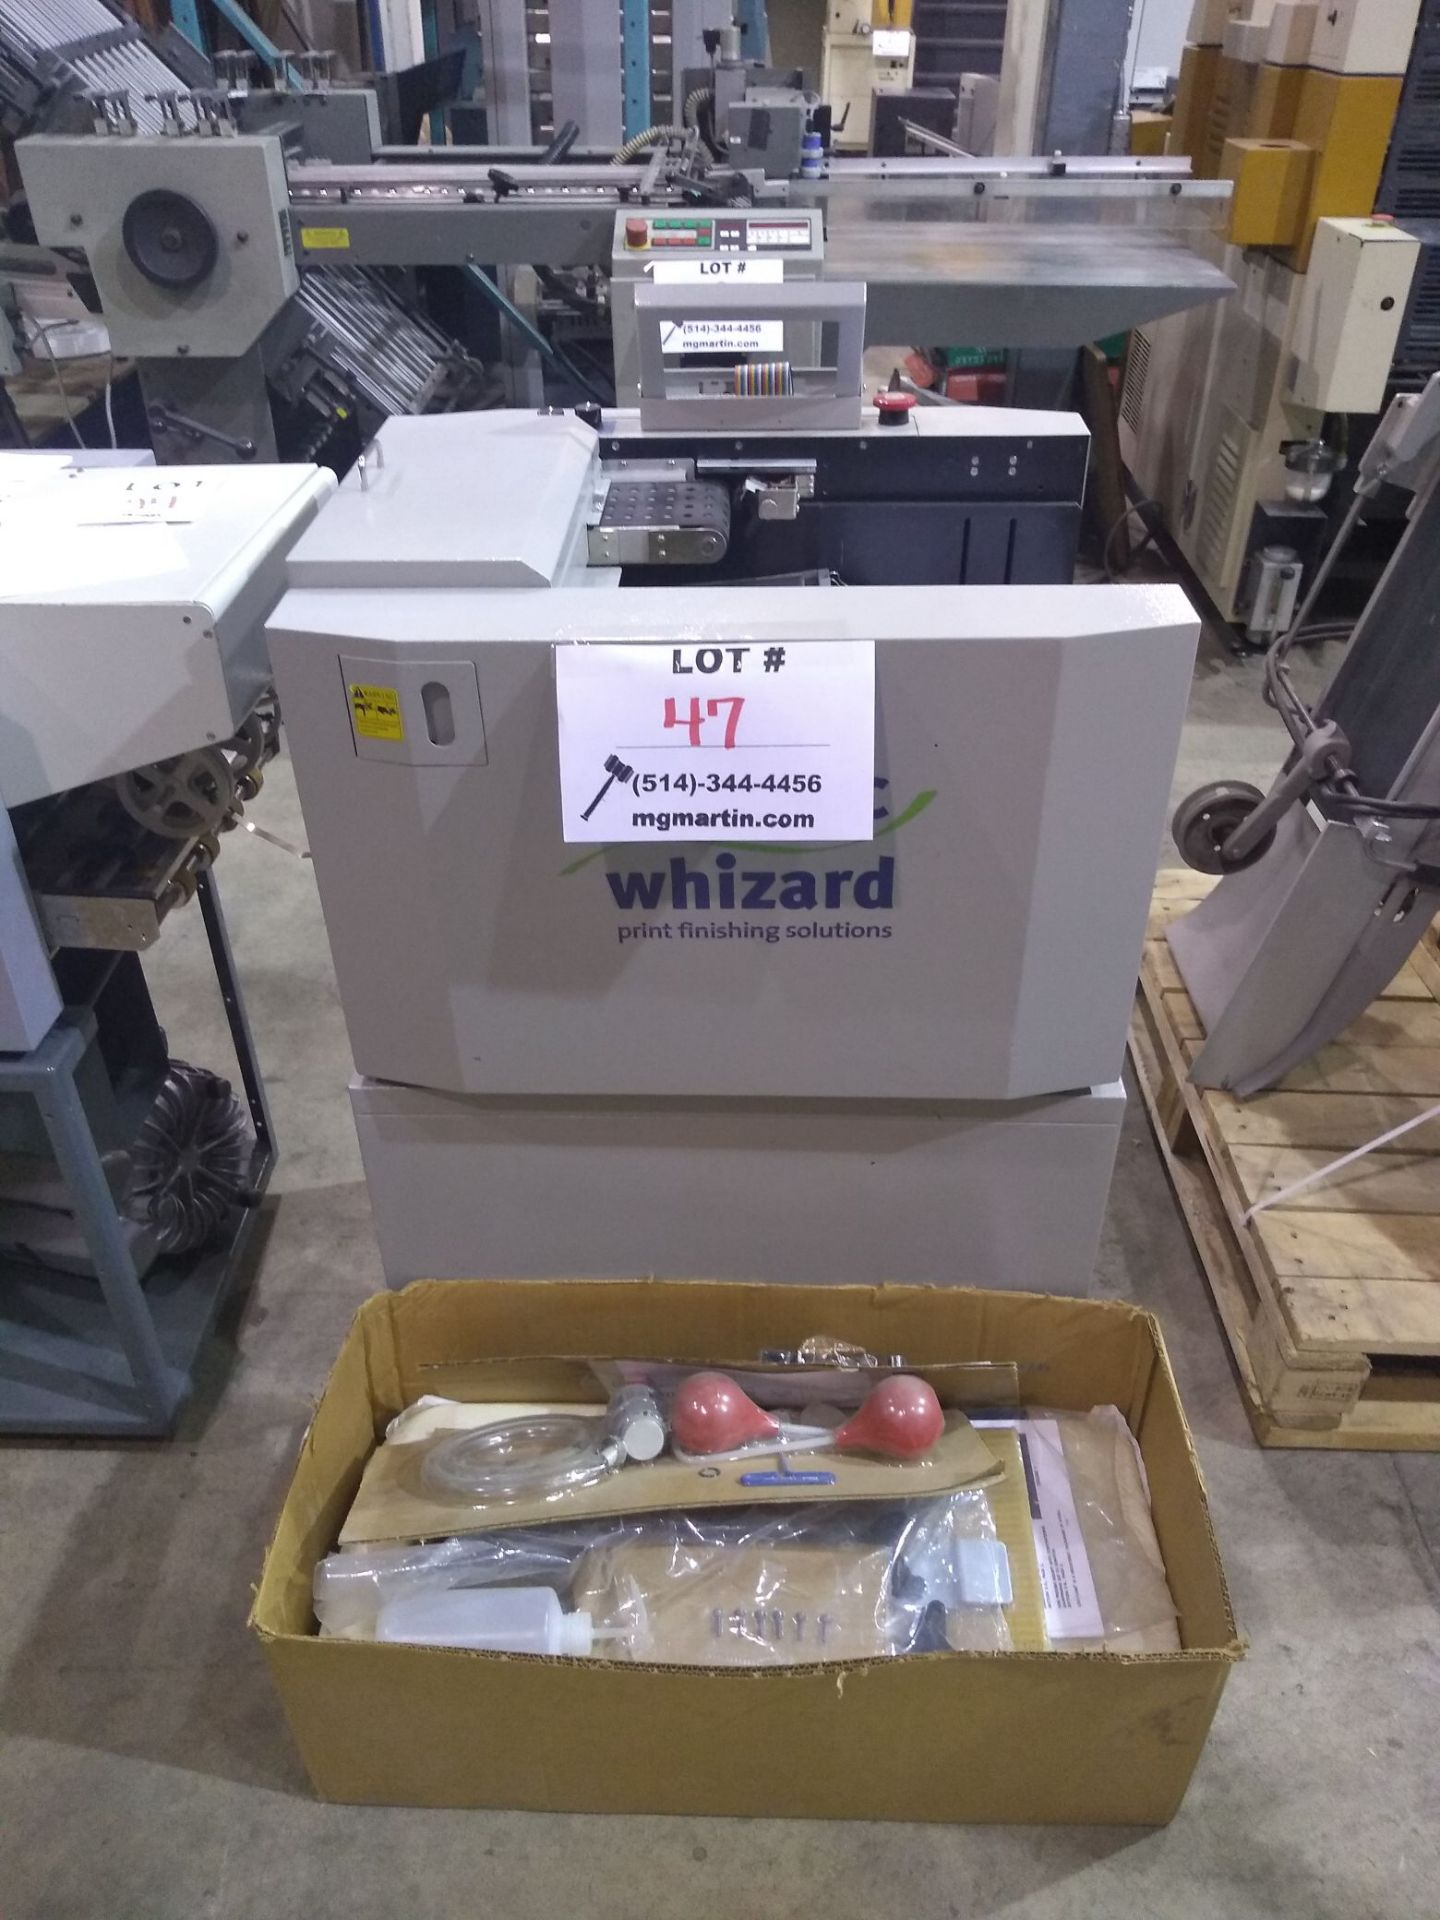 GRAPHIC WHIZARD auto creaser (mod: 335 A+)/KOMPAC automatic dampening system (mod: sp430) (AS IS)